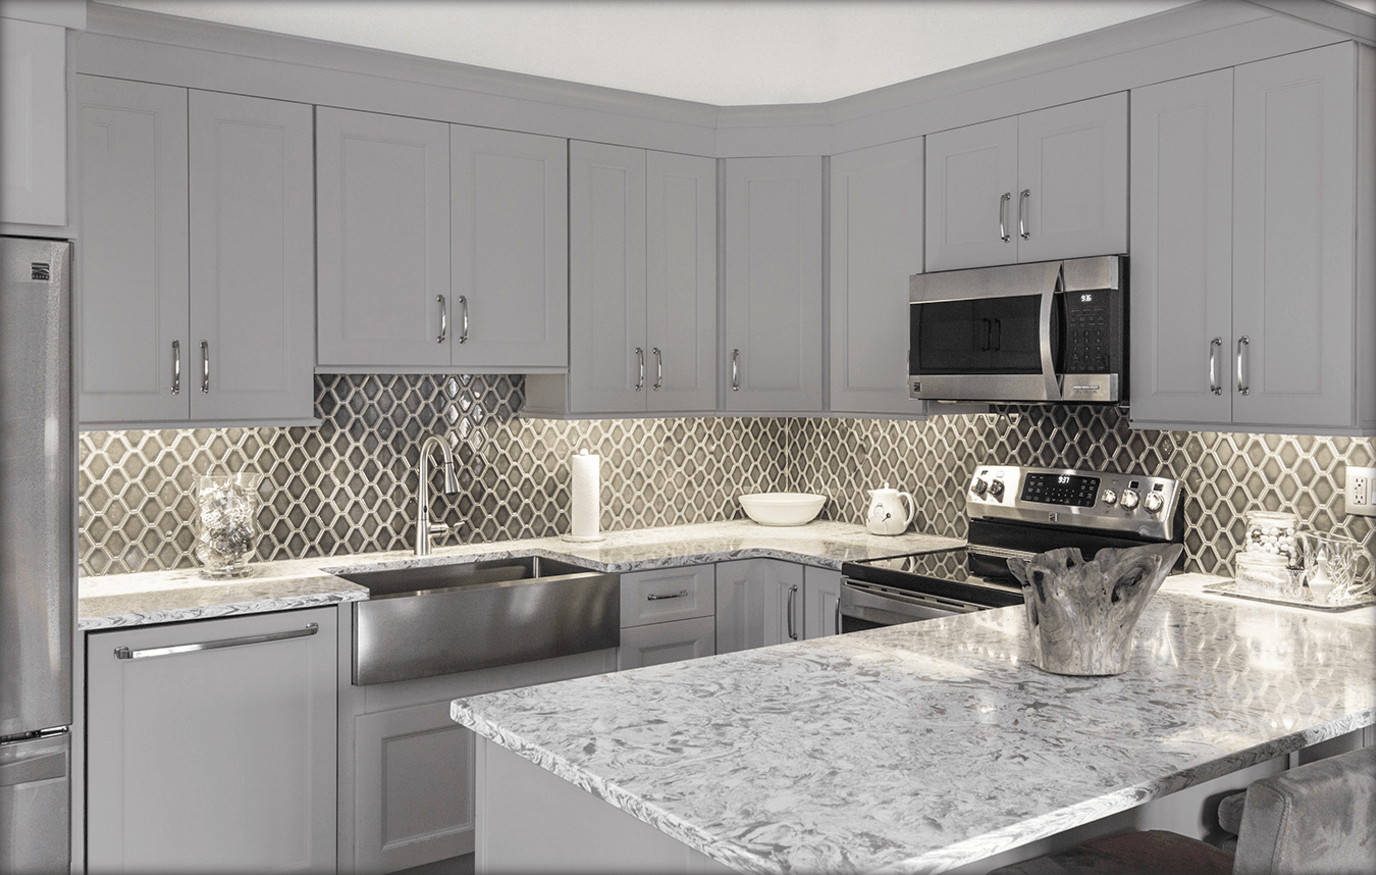 Quality Cabinets For Your Home Save On Cabinets